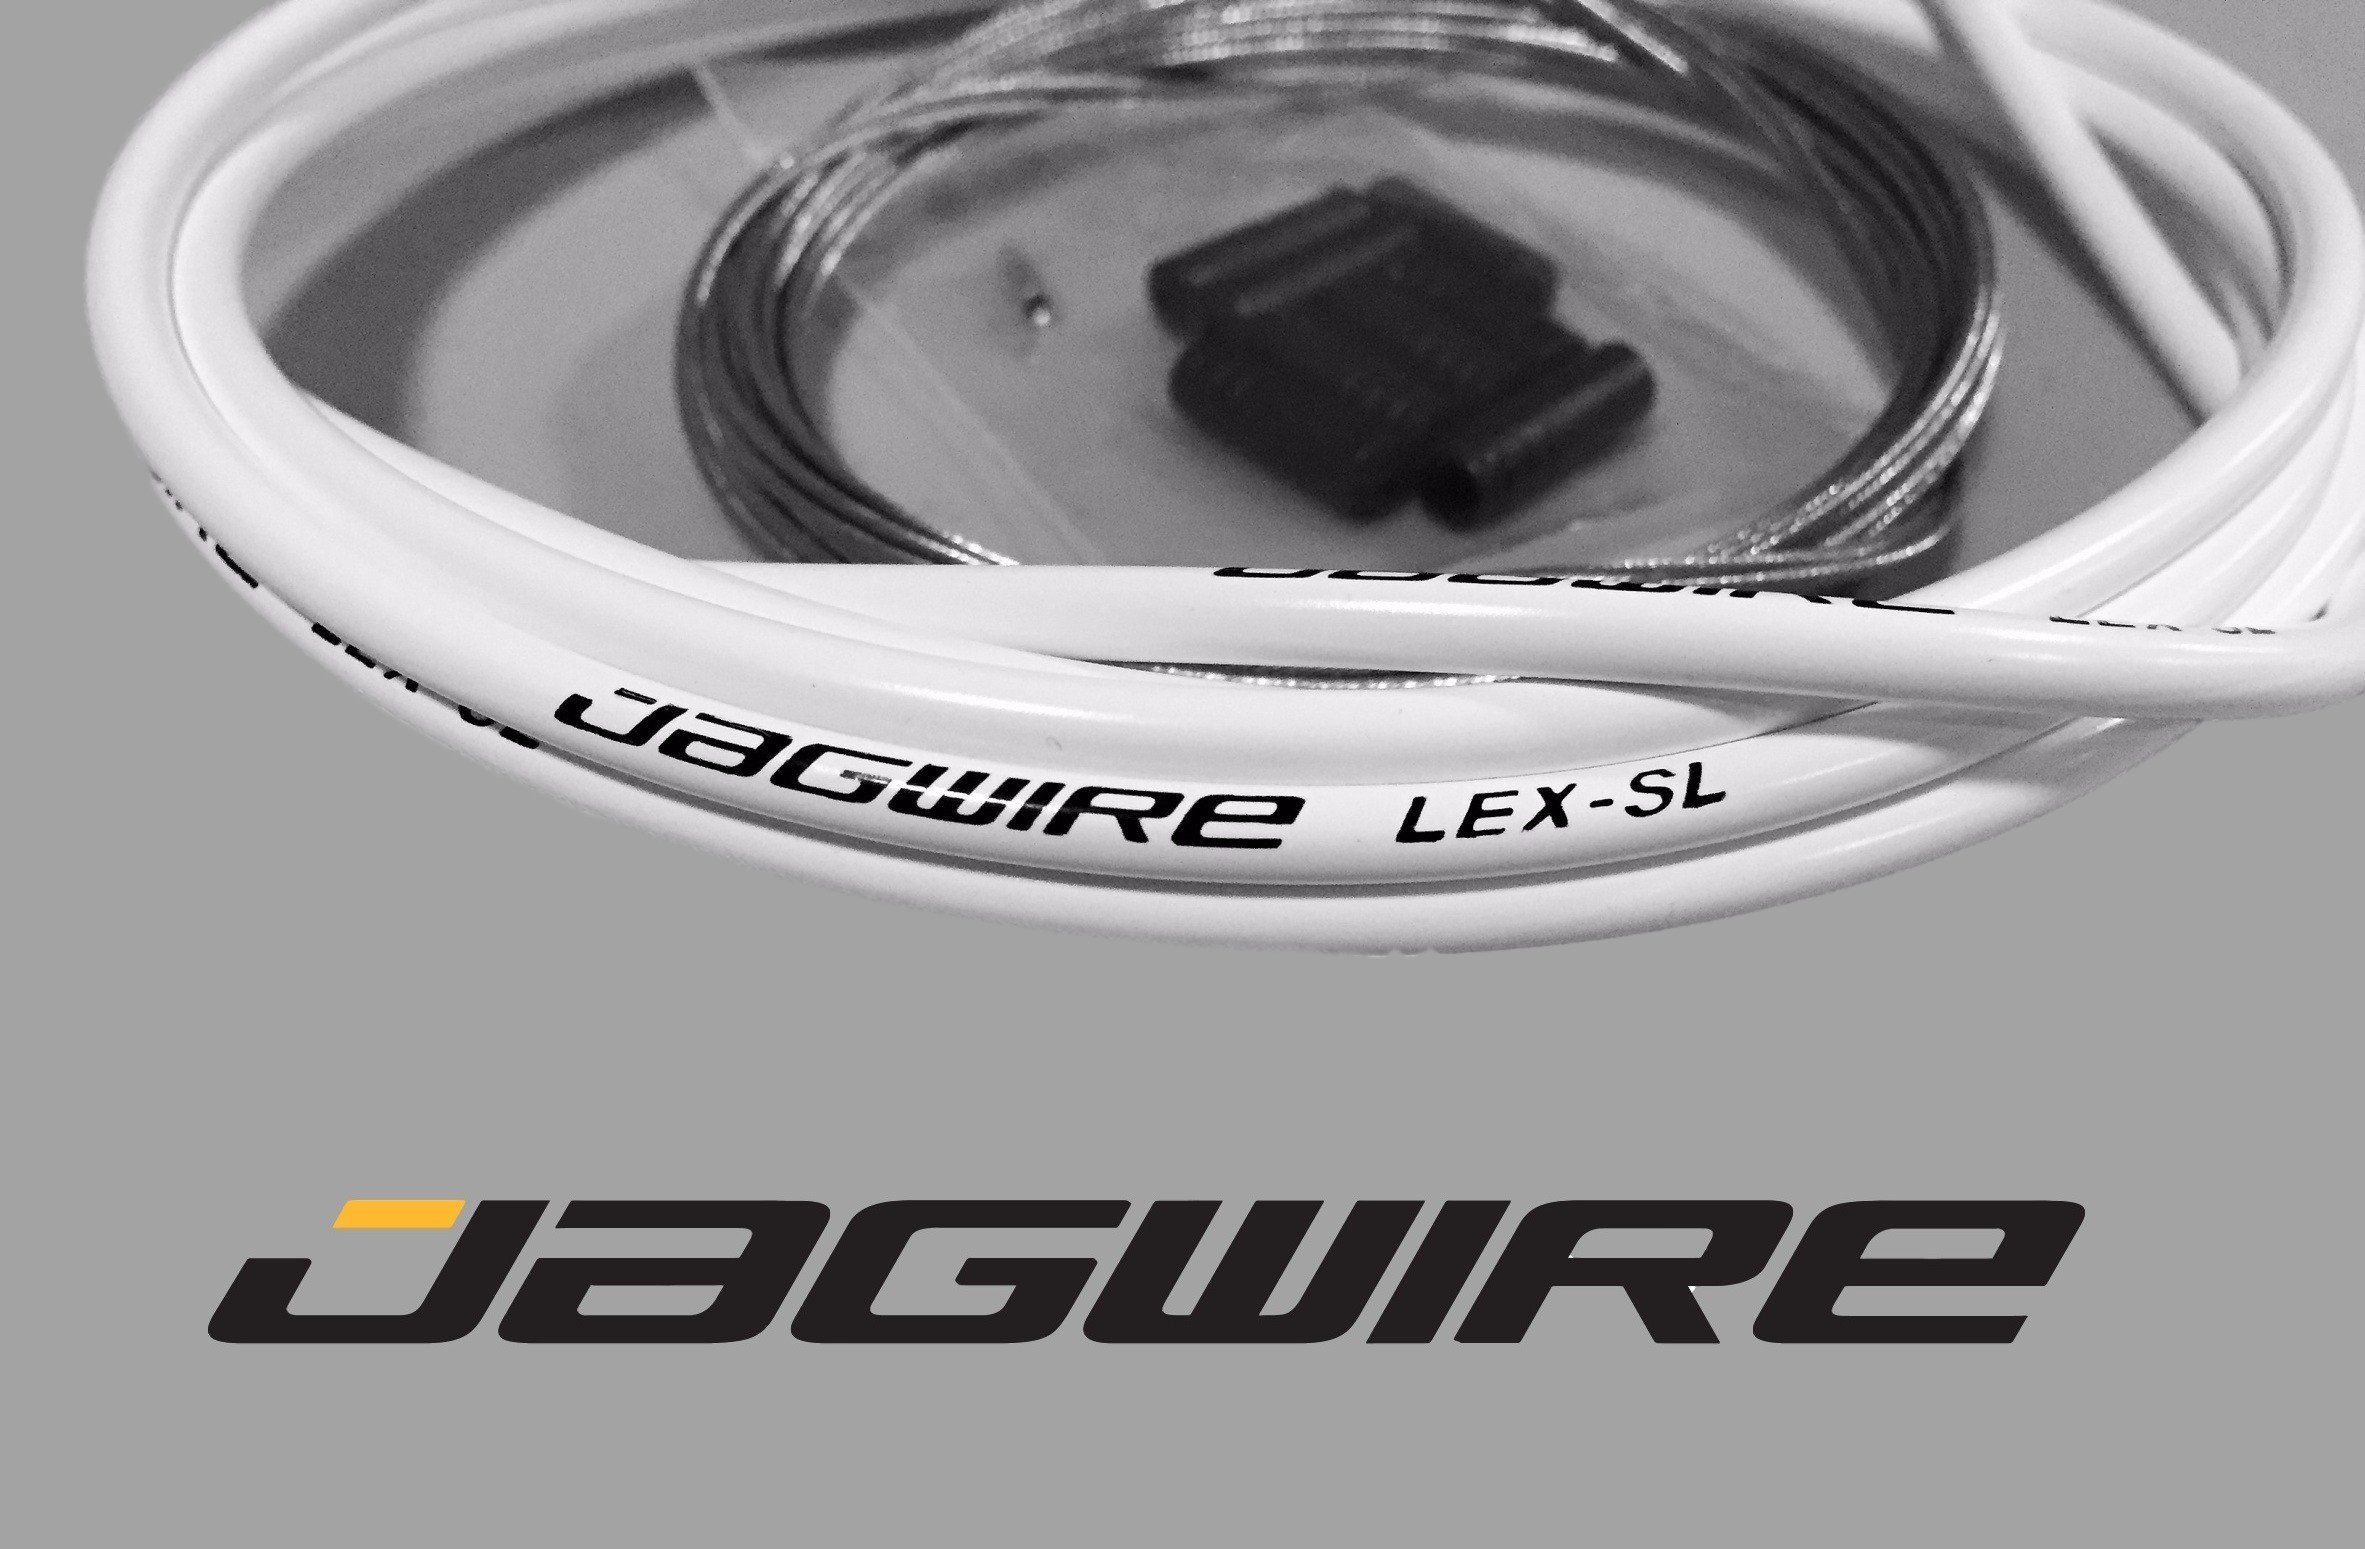 JAGWIRE MOUNTAIN SHOP KIT - Shifter / Derailleur Cable & Housing Kit - WHITE - SRAM/Shimano MTB by Jagwire (Image #2)